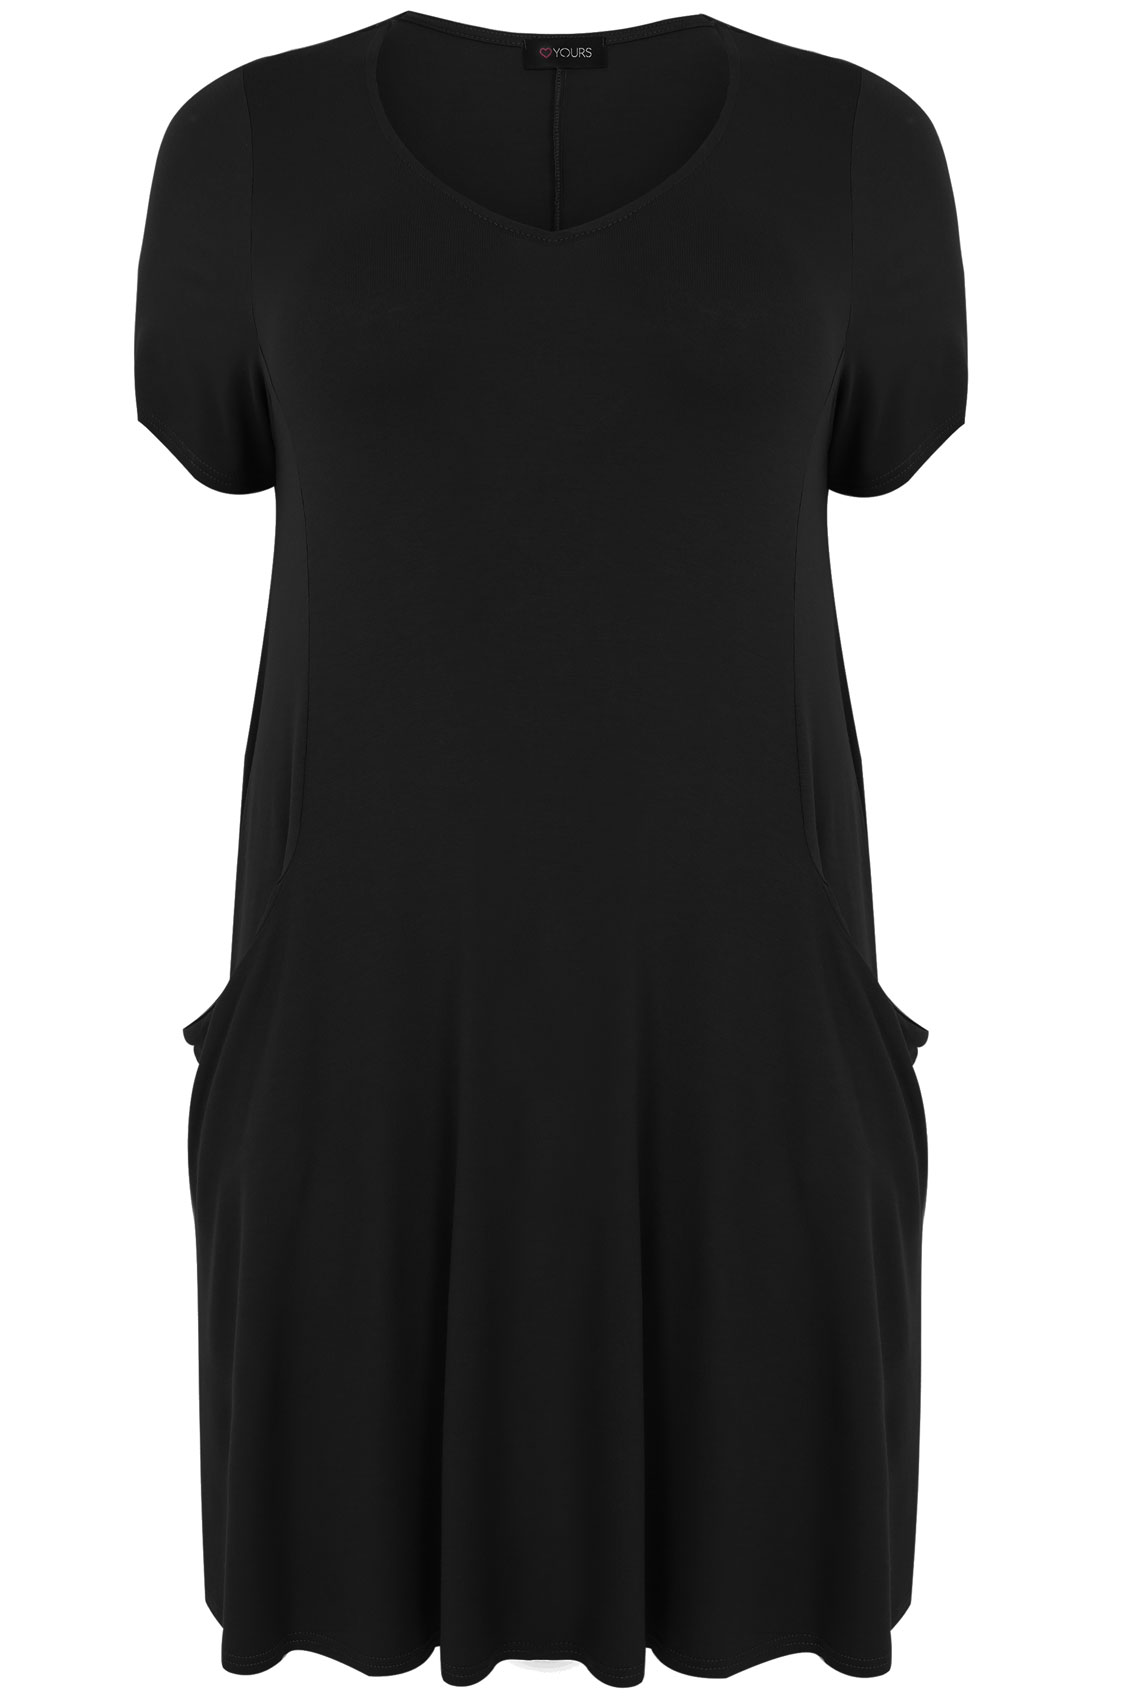 Black Jersey Short Sleeve Dress With Drop Pockets Plus Size 16 to 36